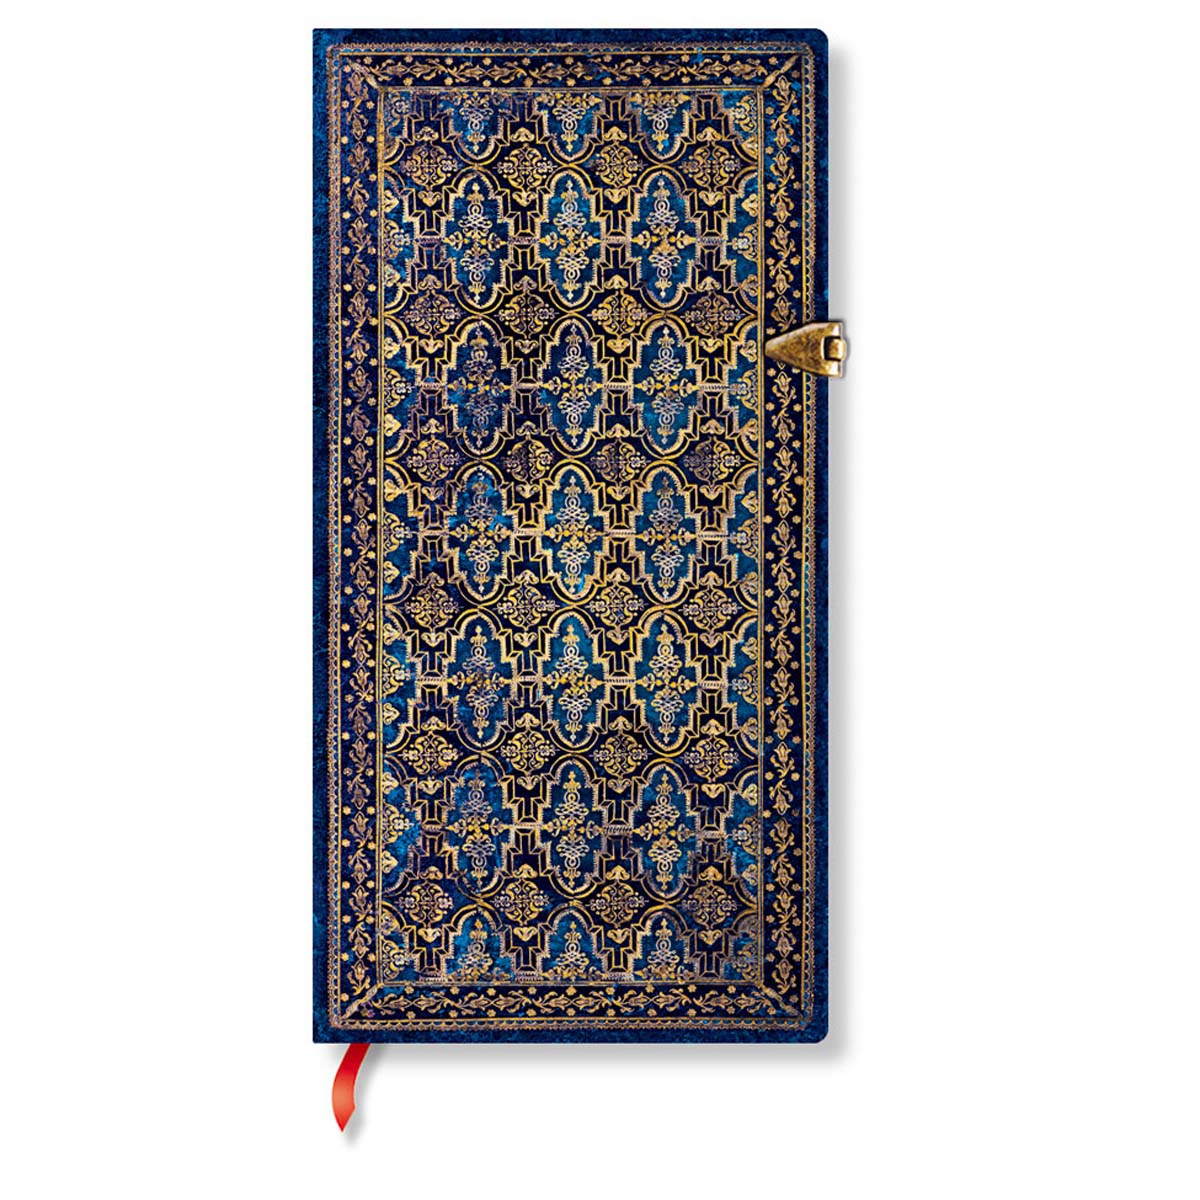 Paperblanks Slim Blue Rhine 3.75 x 7 Inch Journal